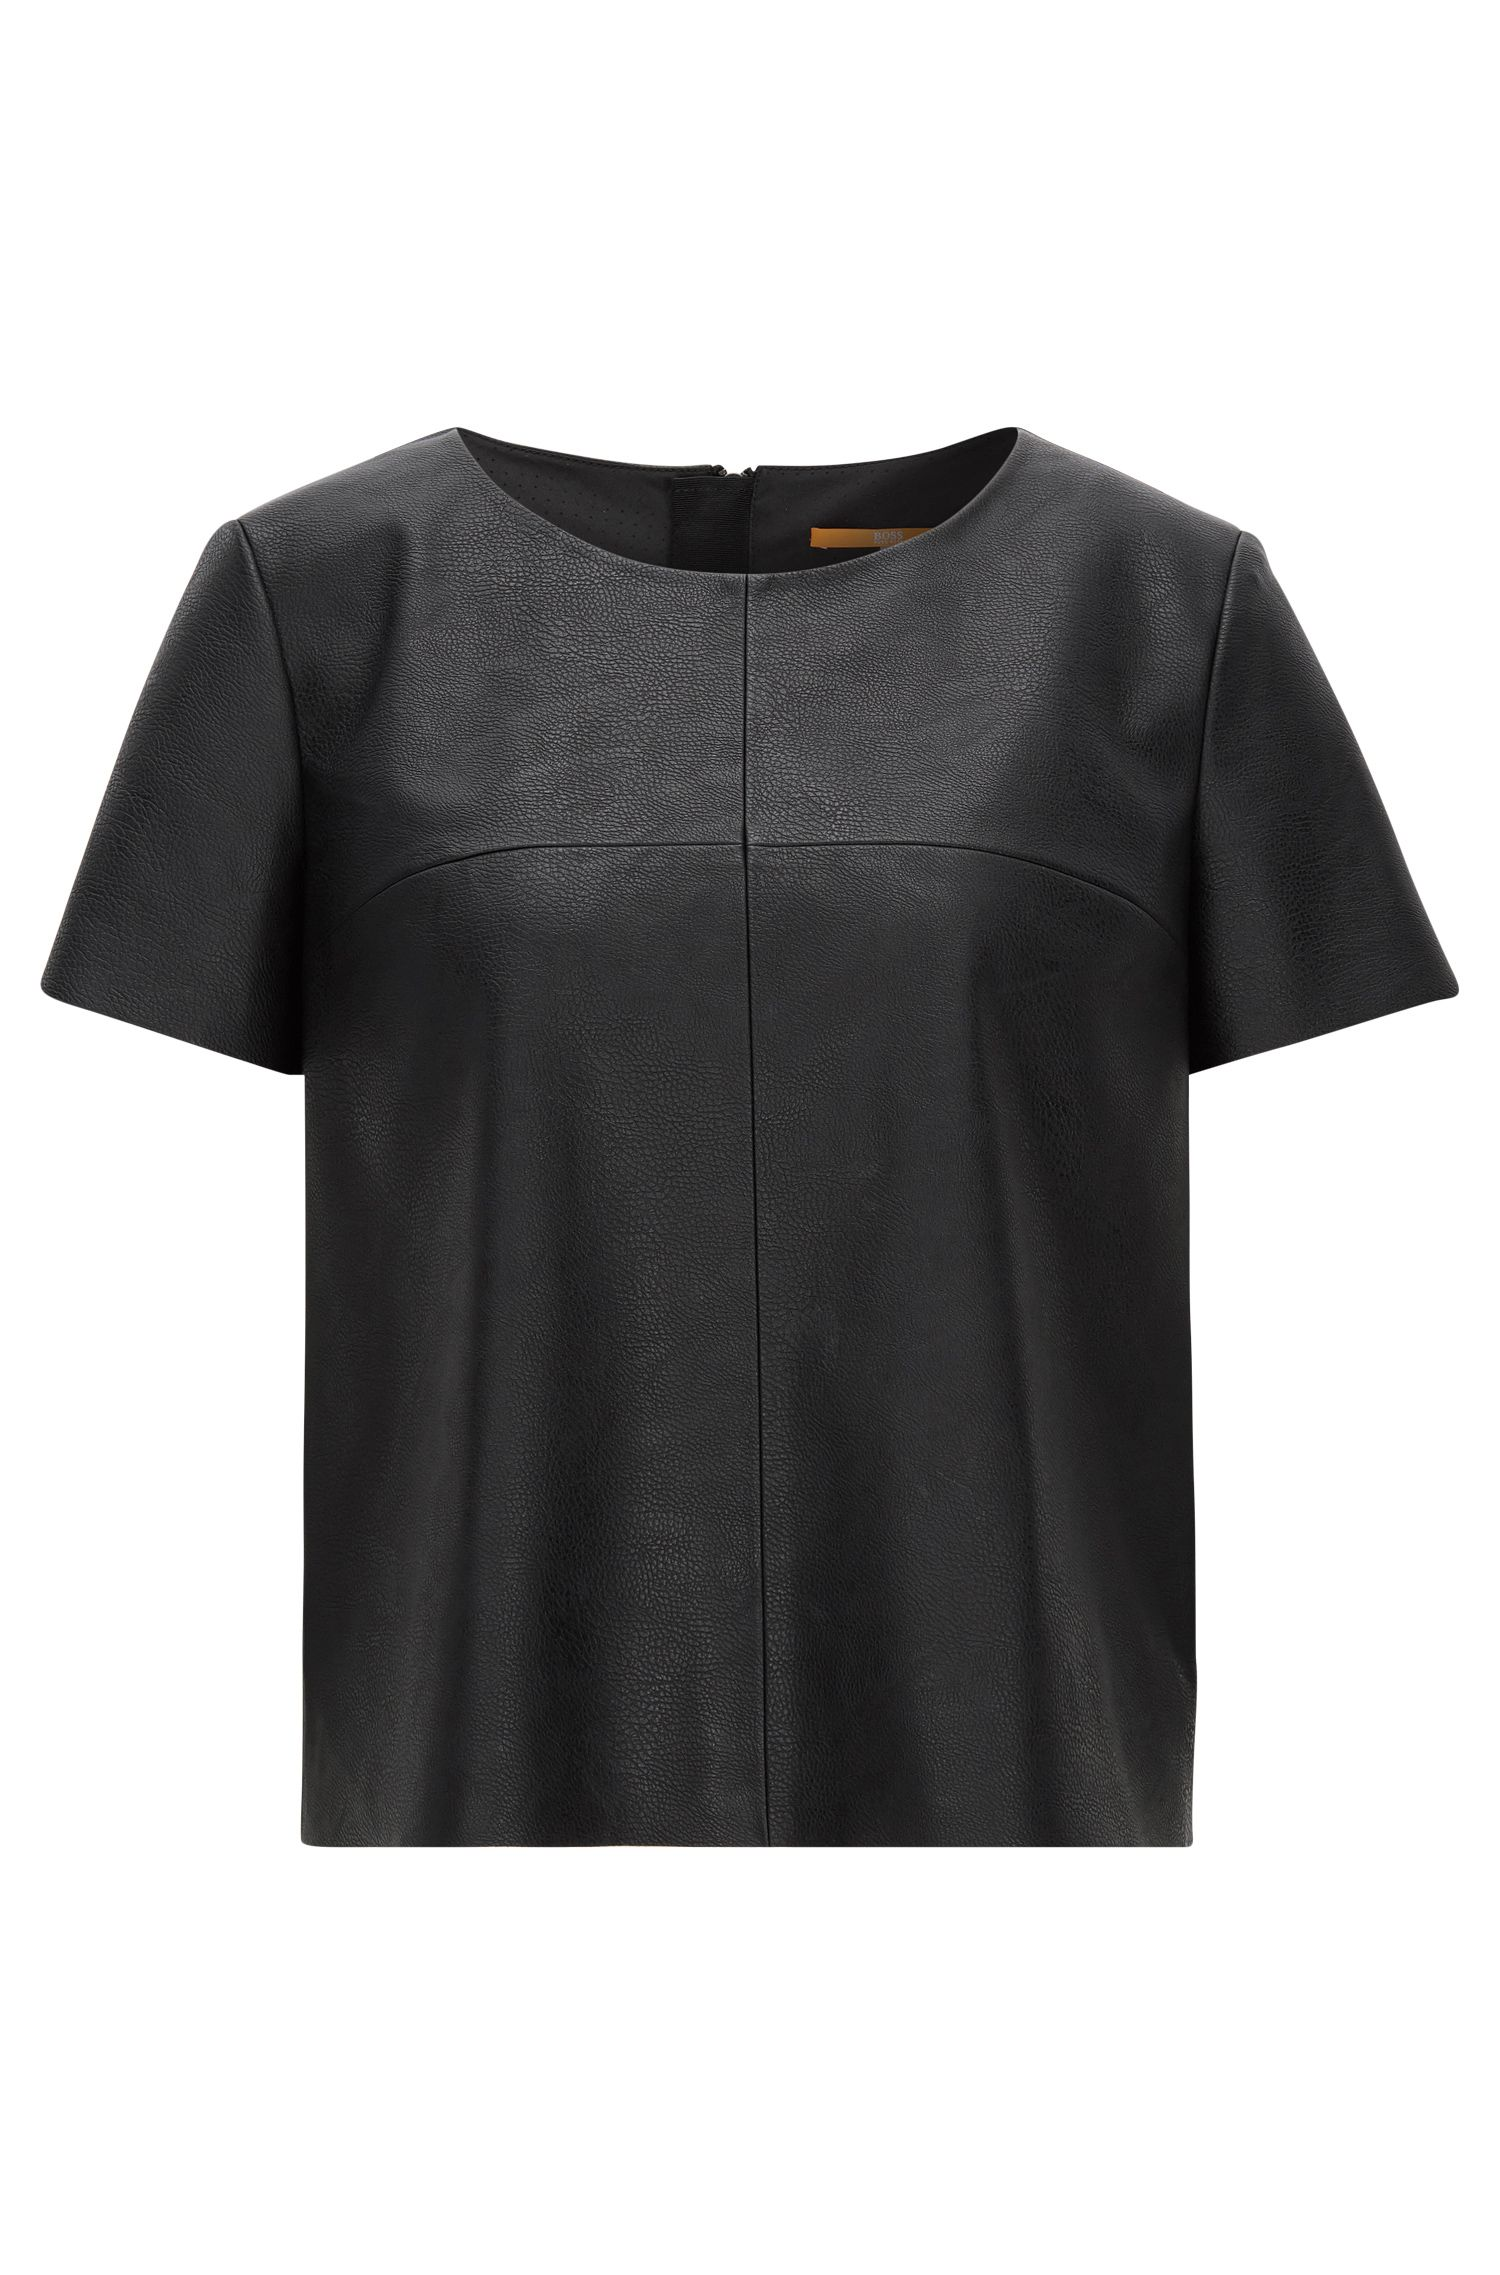 Short-sleeved faux-leather top